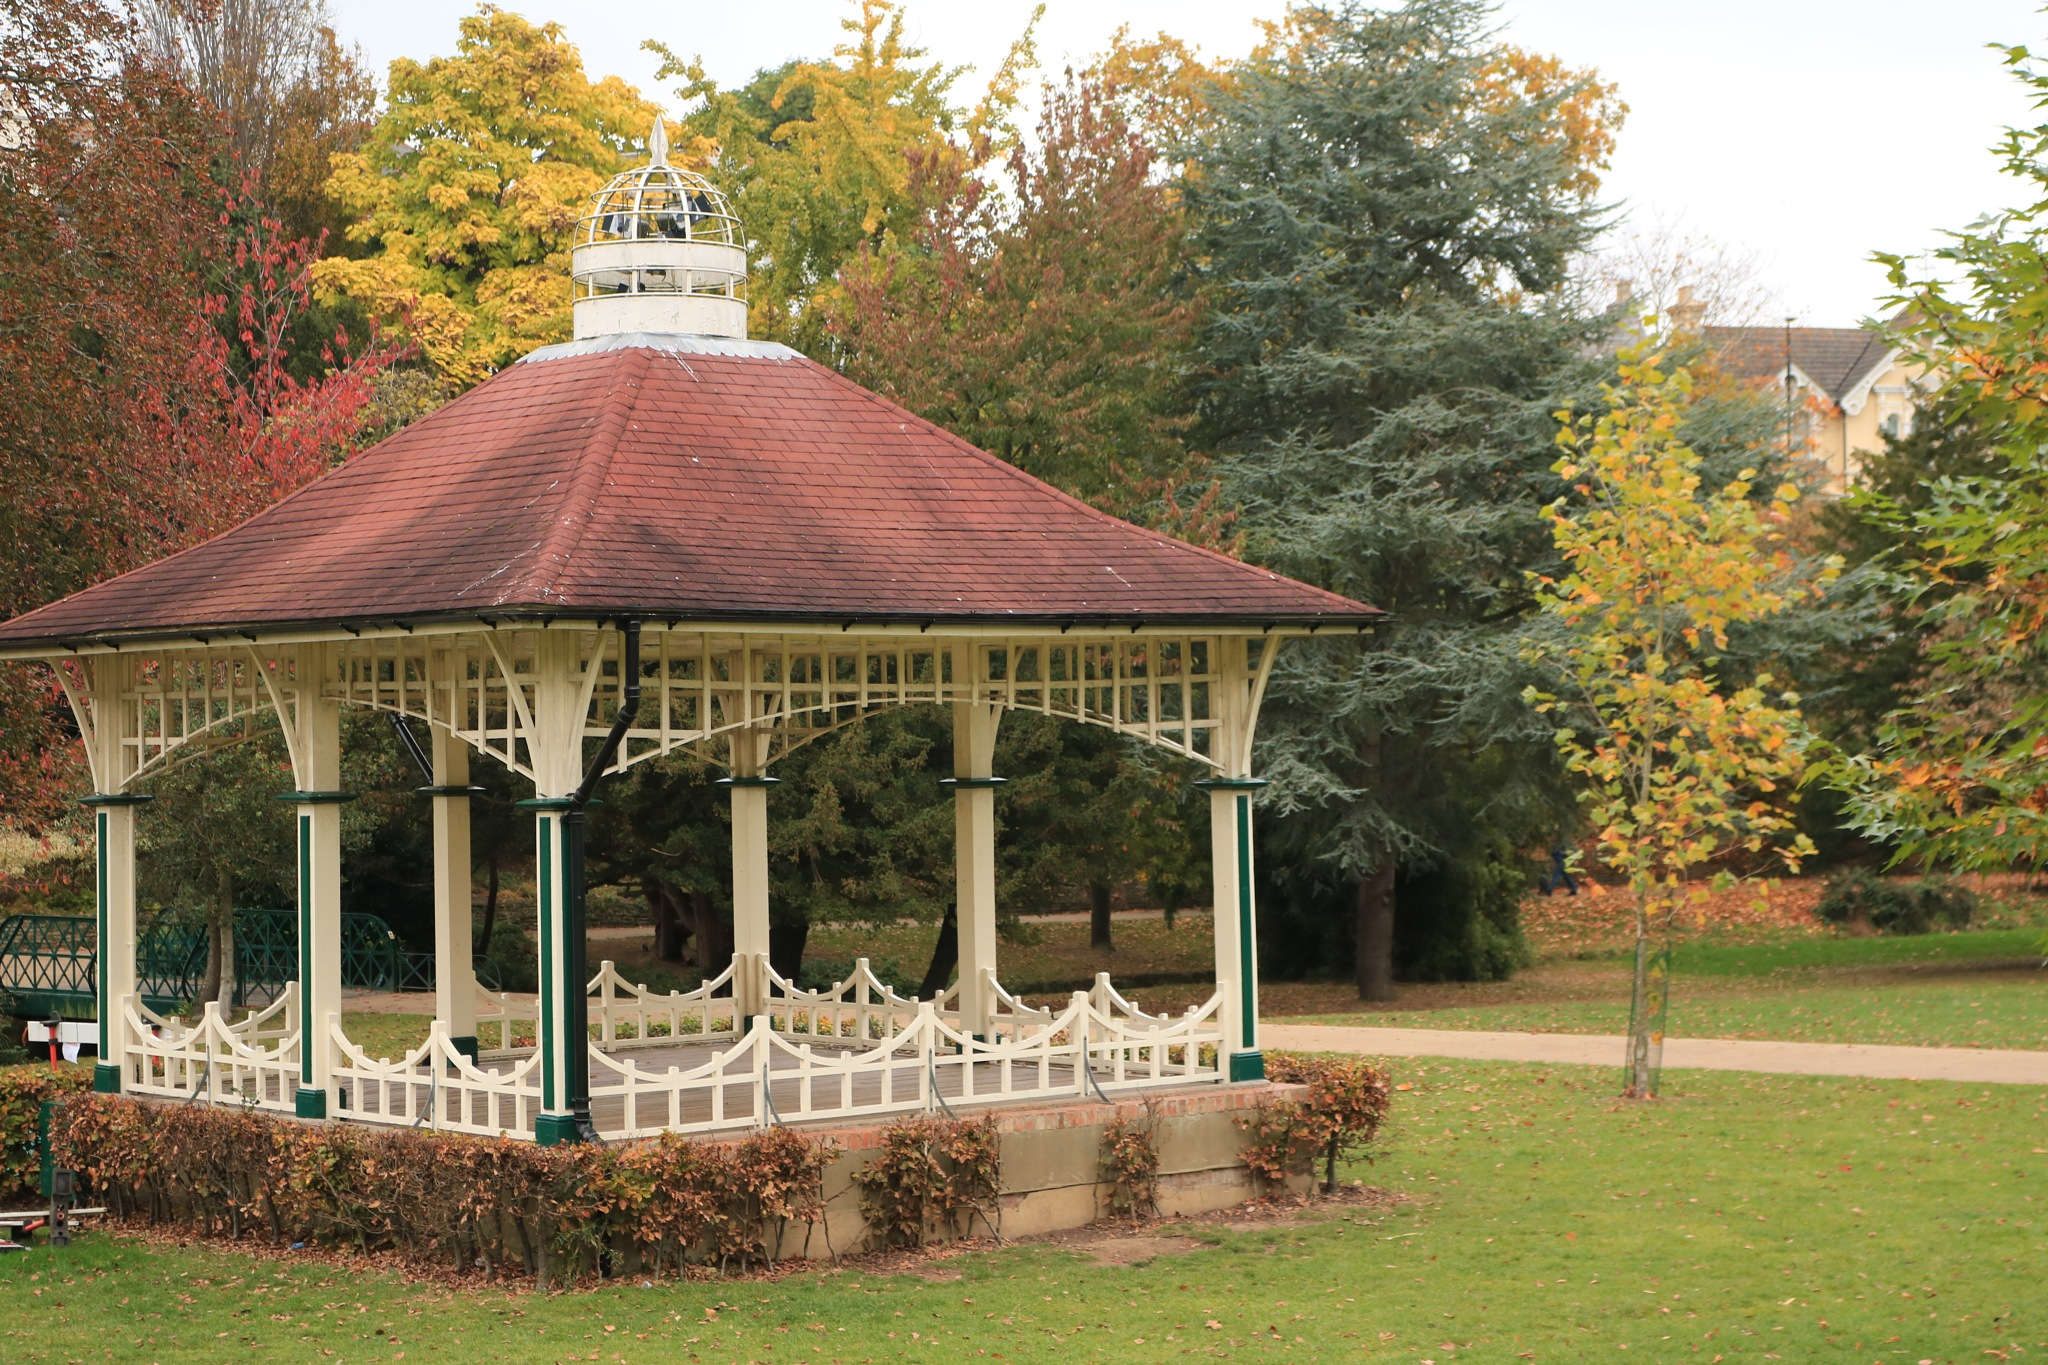 The bandstand in Alexandra Park by Mo Dessouki